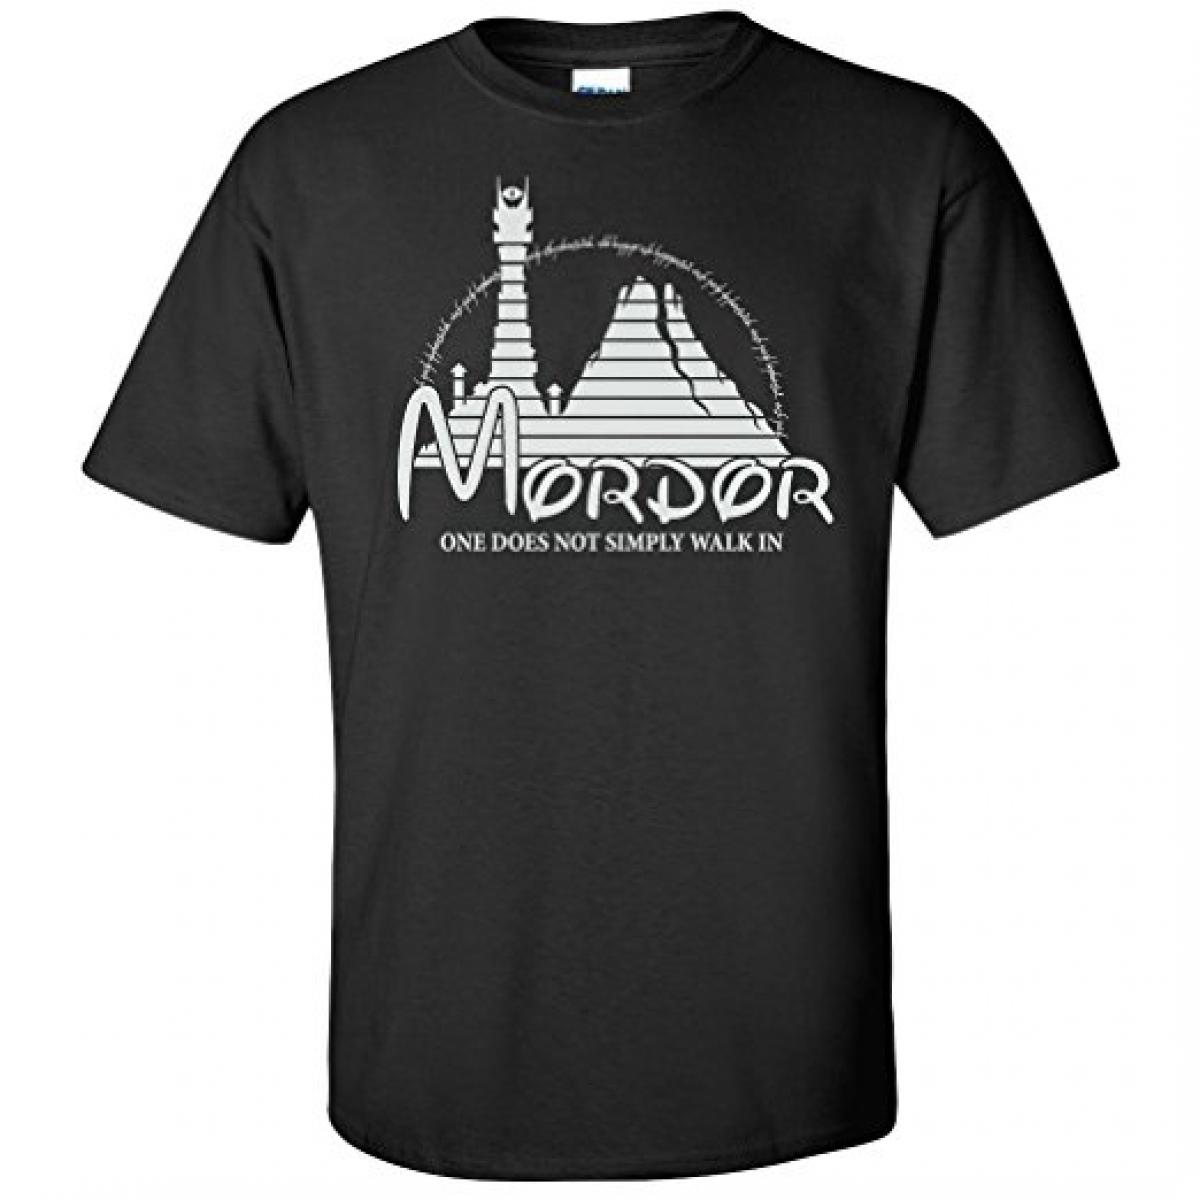 Mordor Lord Of The Rings Graphic T-Shirt